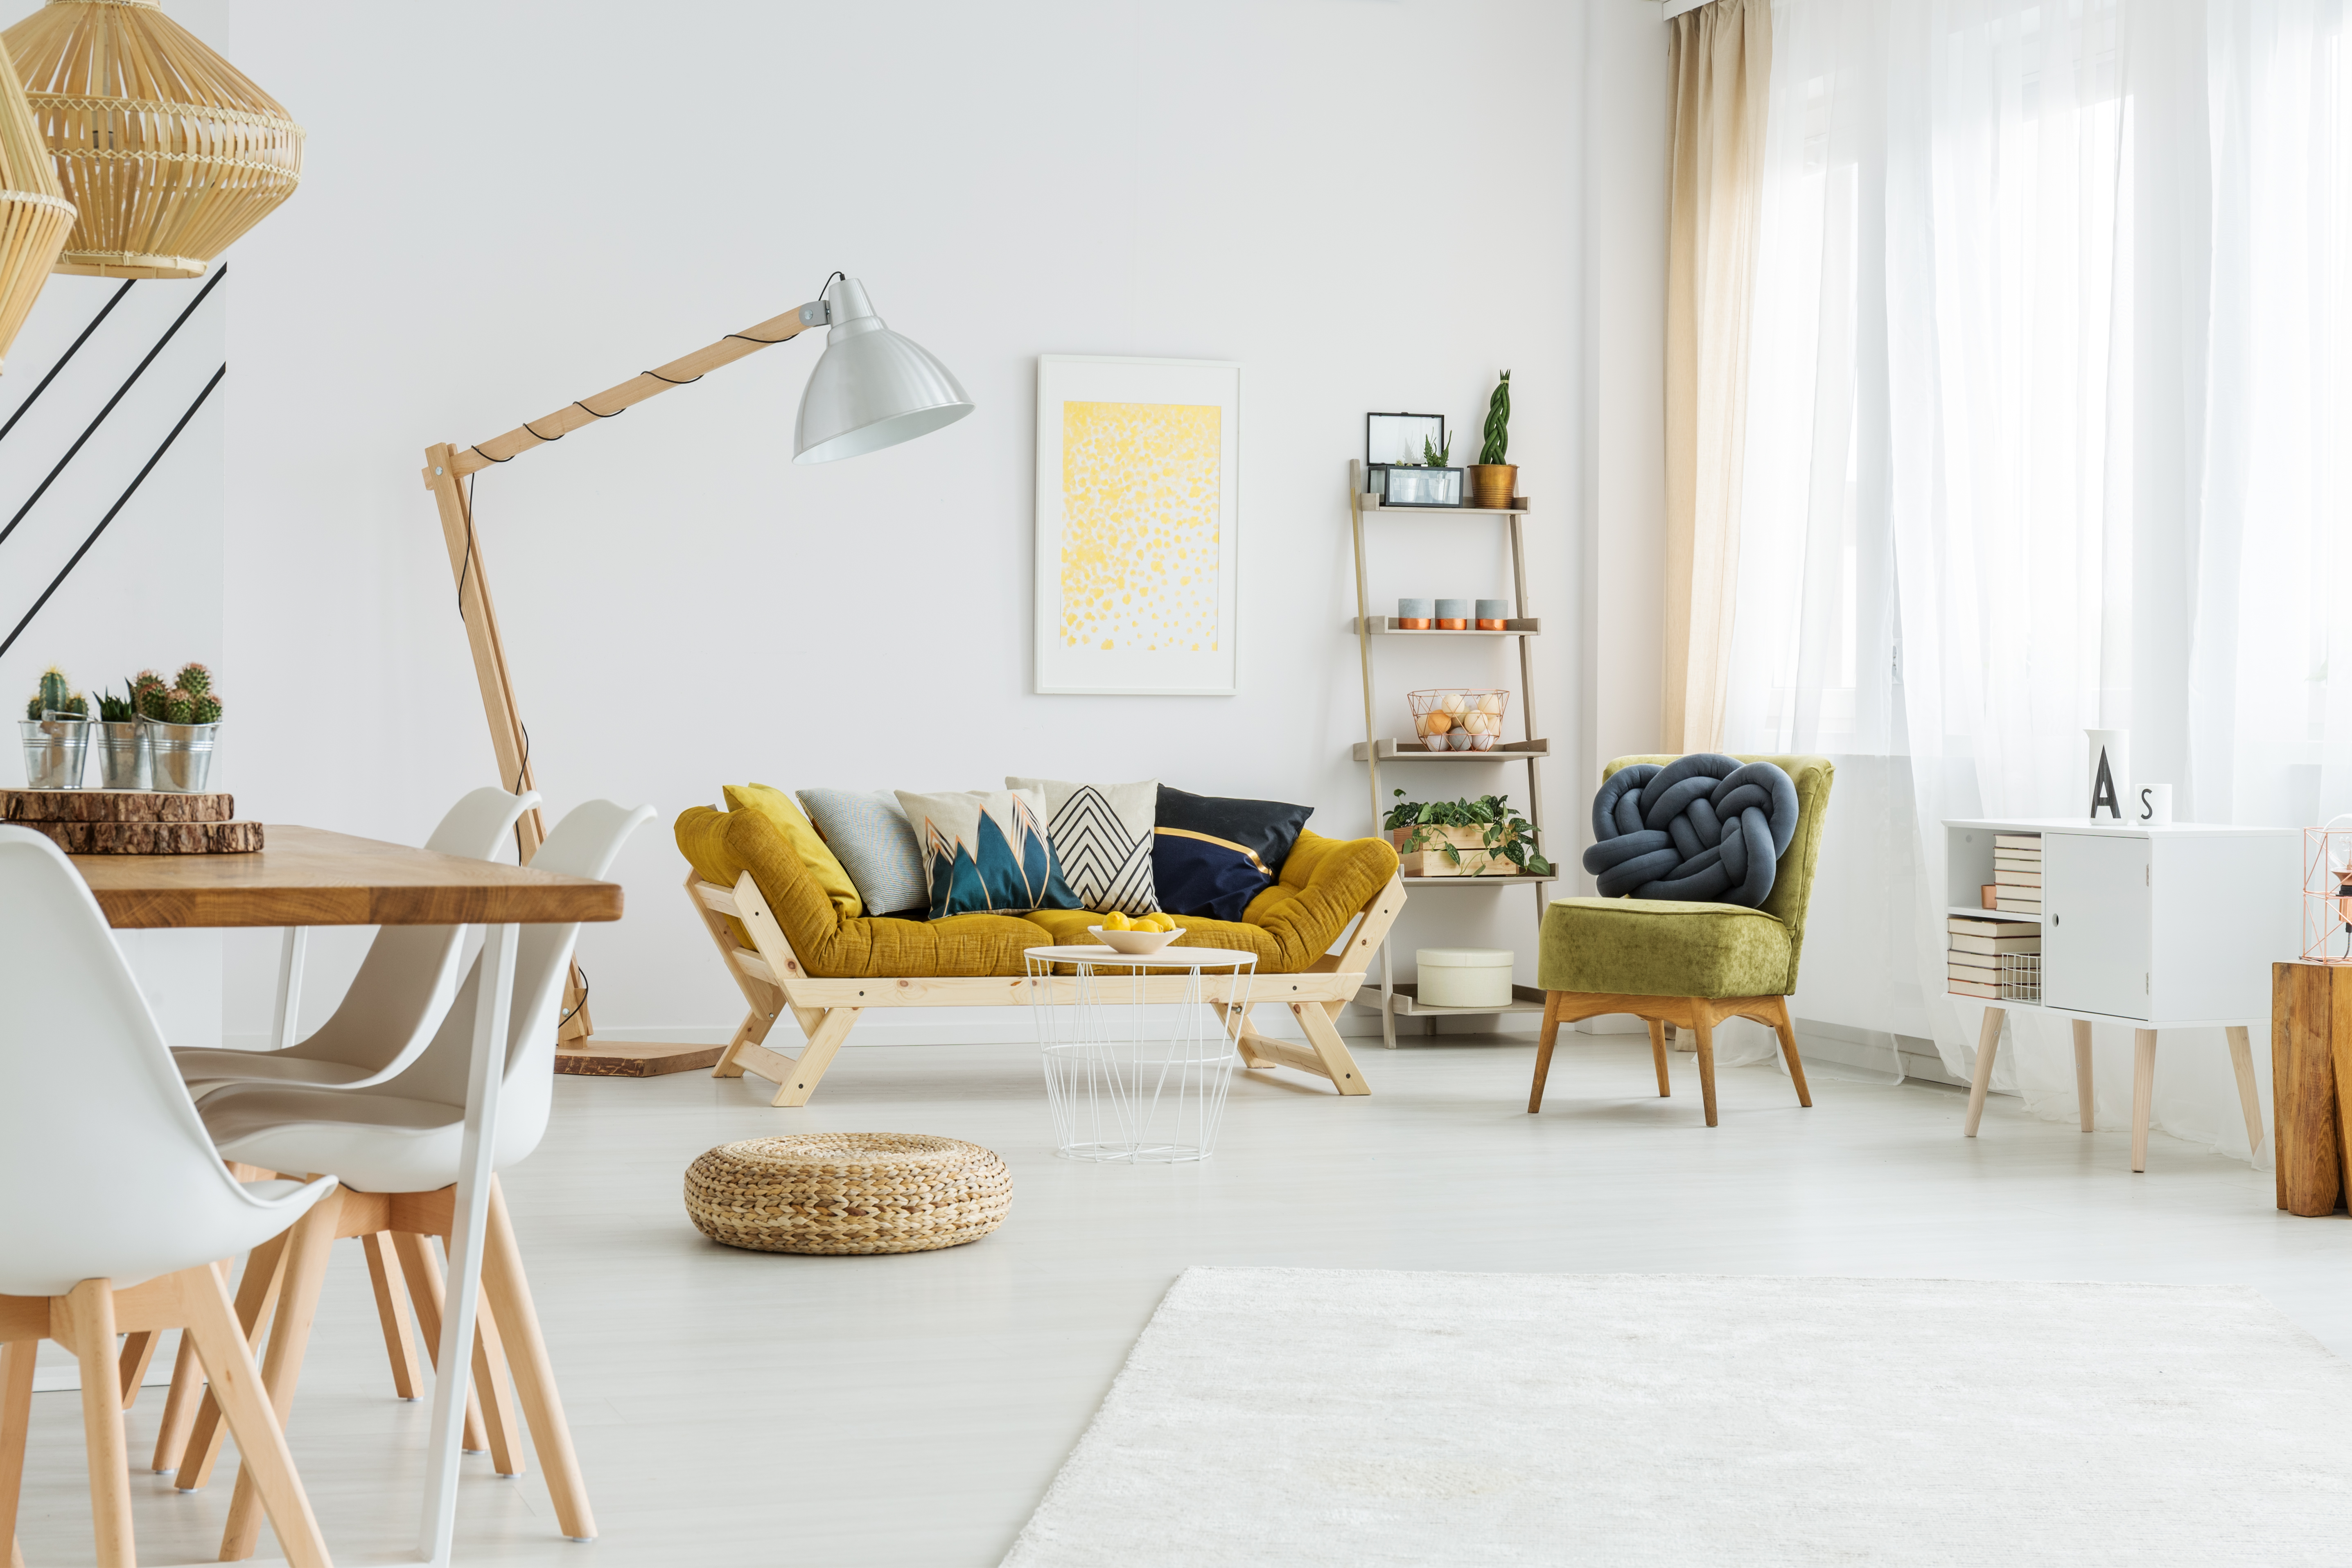 Connect With Clients Today With Images on Slow Living 8